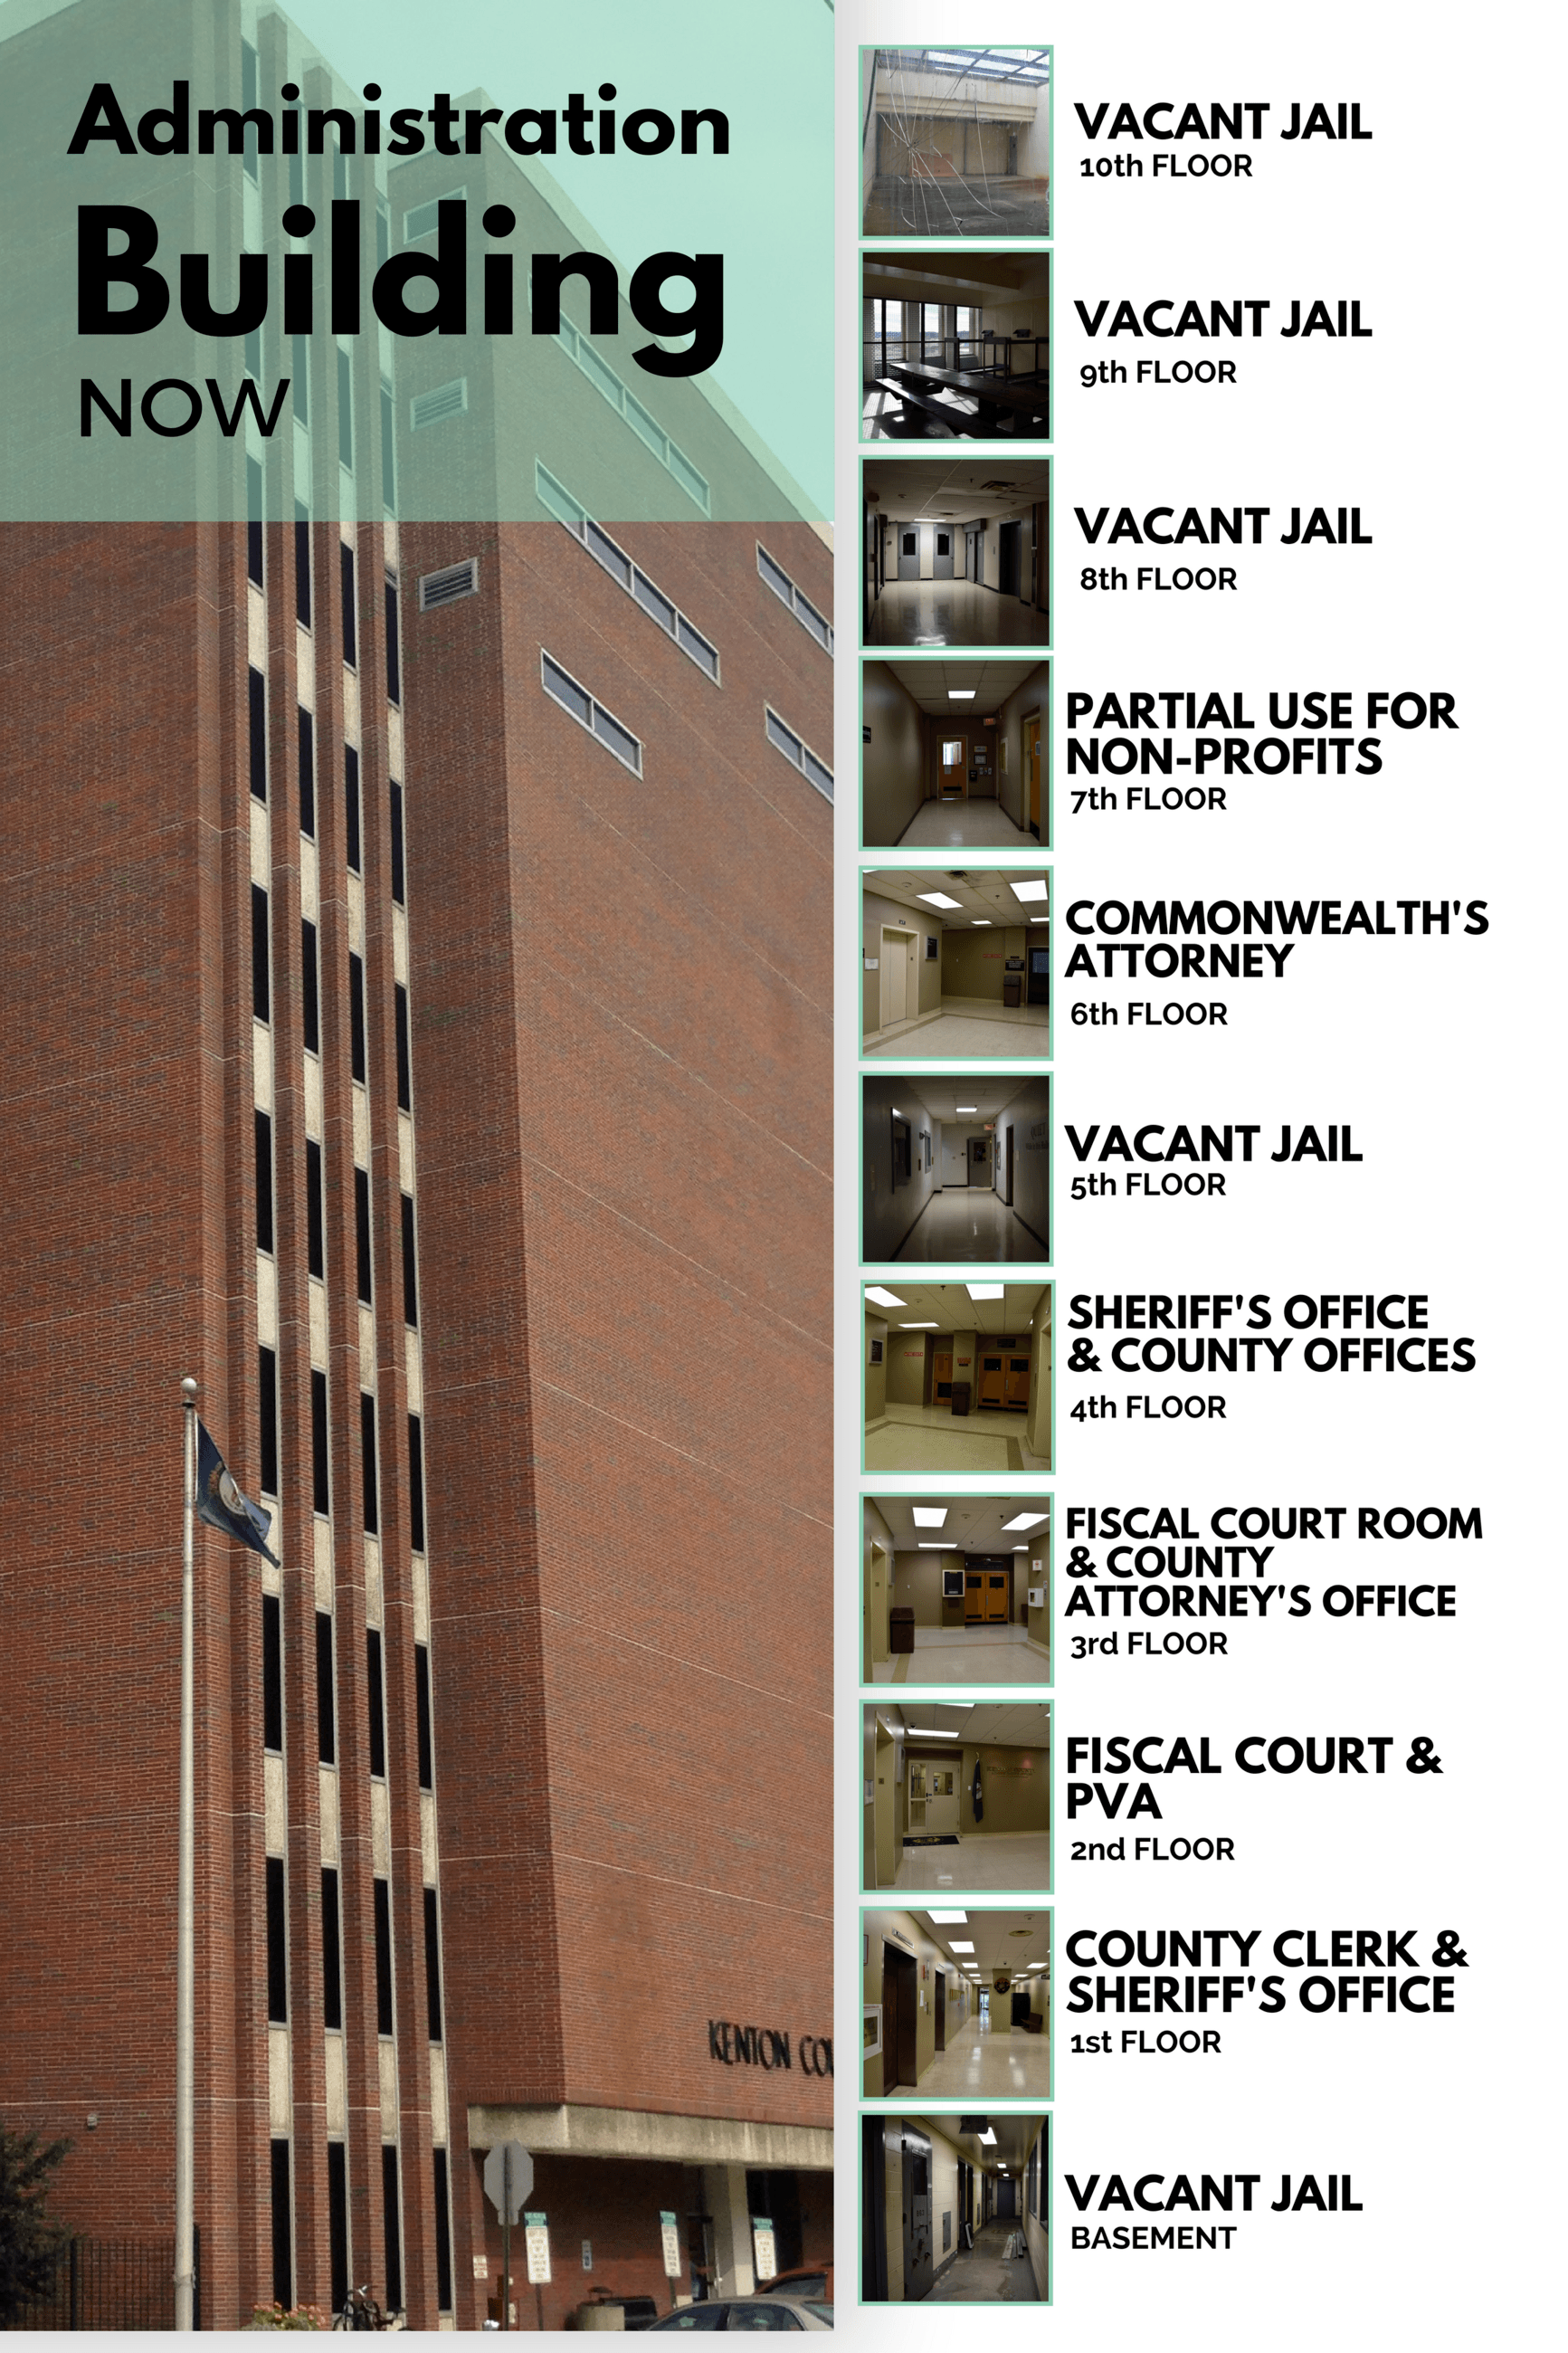 Infographic showing which departments occupy which floors in the Administration Building now, many f